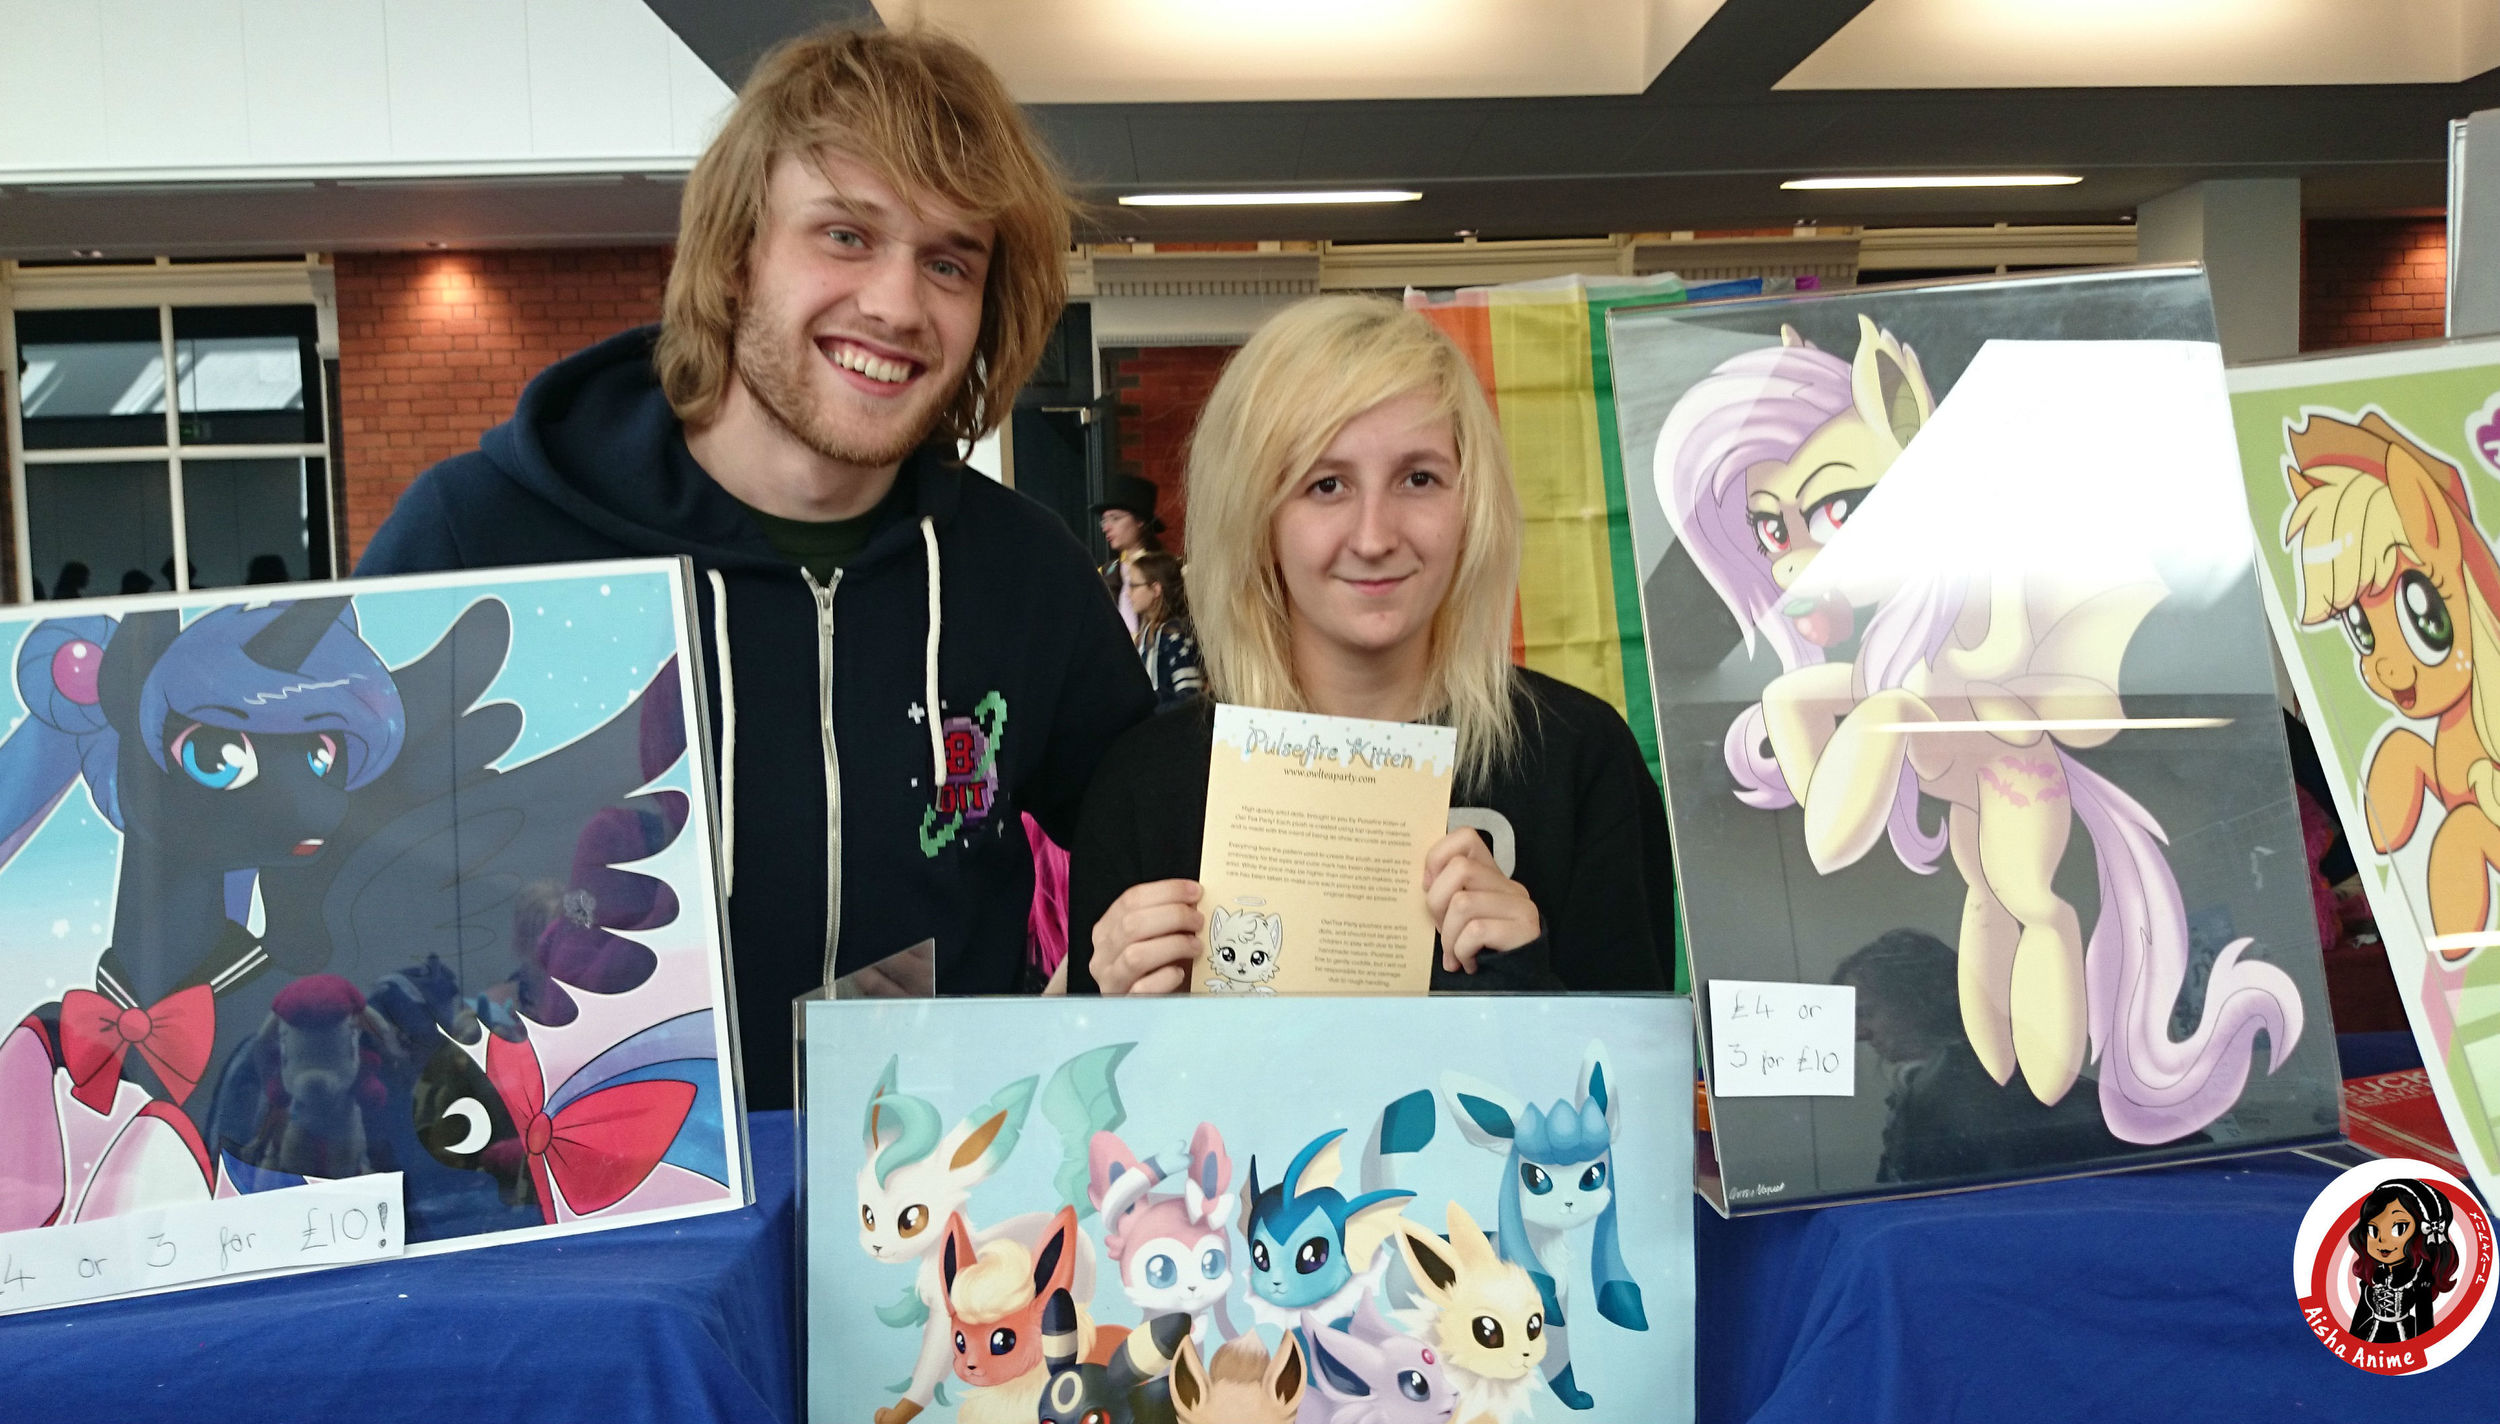 Pulsefire Kitten creator and partner posing with her leftover art as all her plushies sold out Friday night !